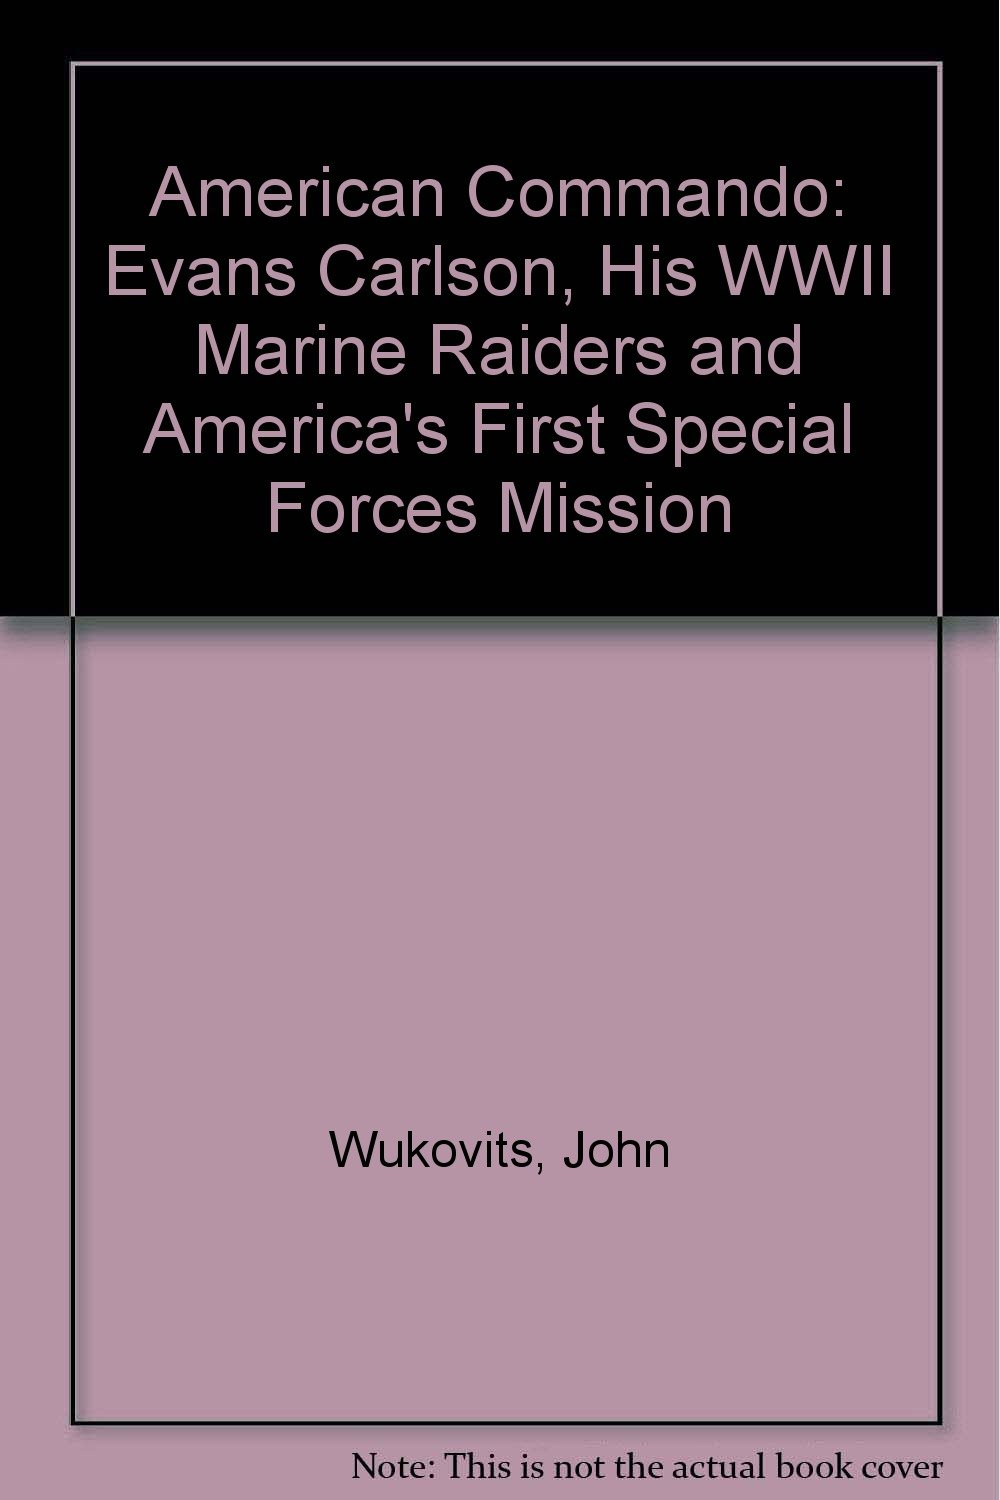 American Commando: Evans Carlson, His WWII Marine Raiders and America's First Special Forces Mission pdf